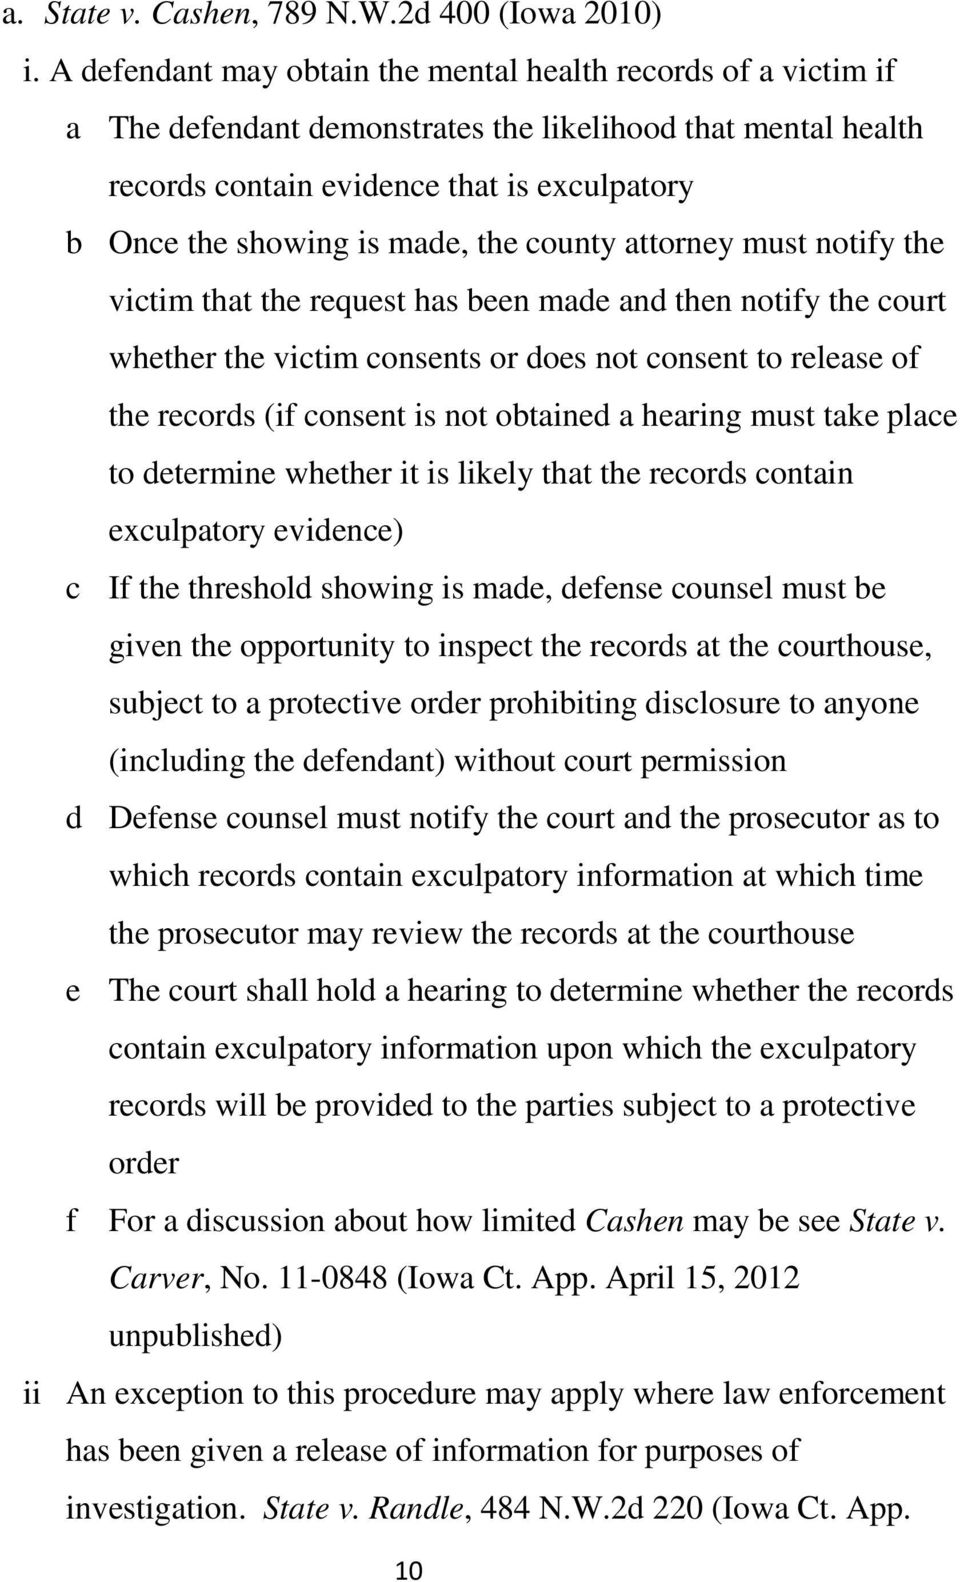 the county attorney must notify the victim that the request has been made and then notify the court whether the victim consents or does not consent to release of the records (if consent is not